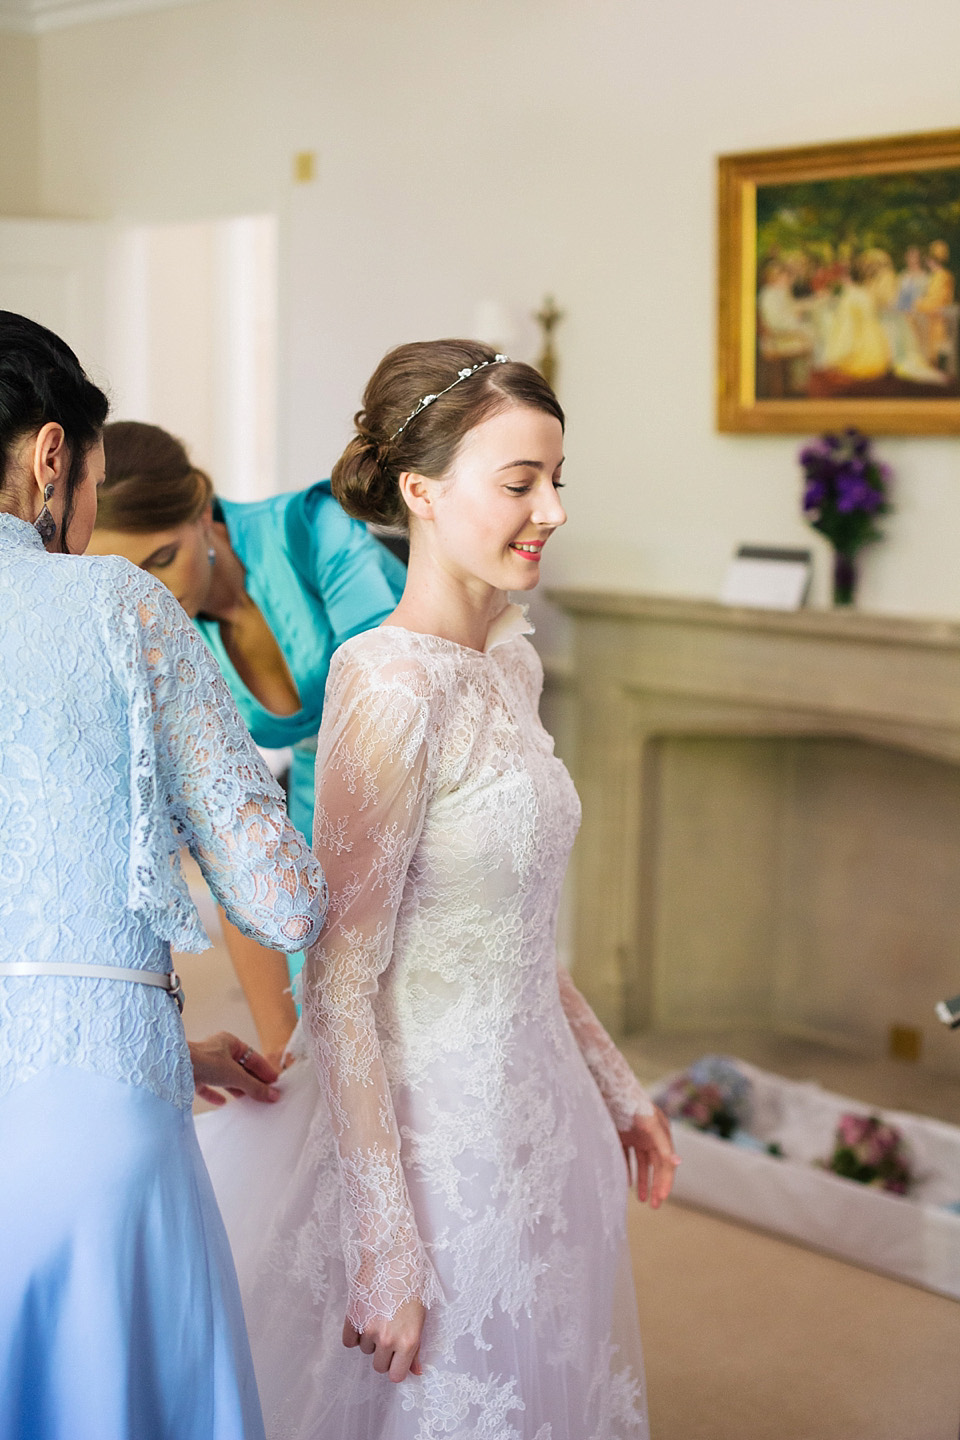 Grace Kelly Elegance and a Manuel Mota Gown for a Fairytale Wedding at Blenheim Palace (Weddings )